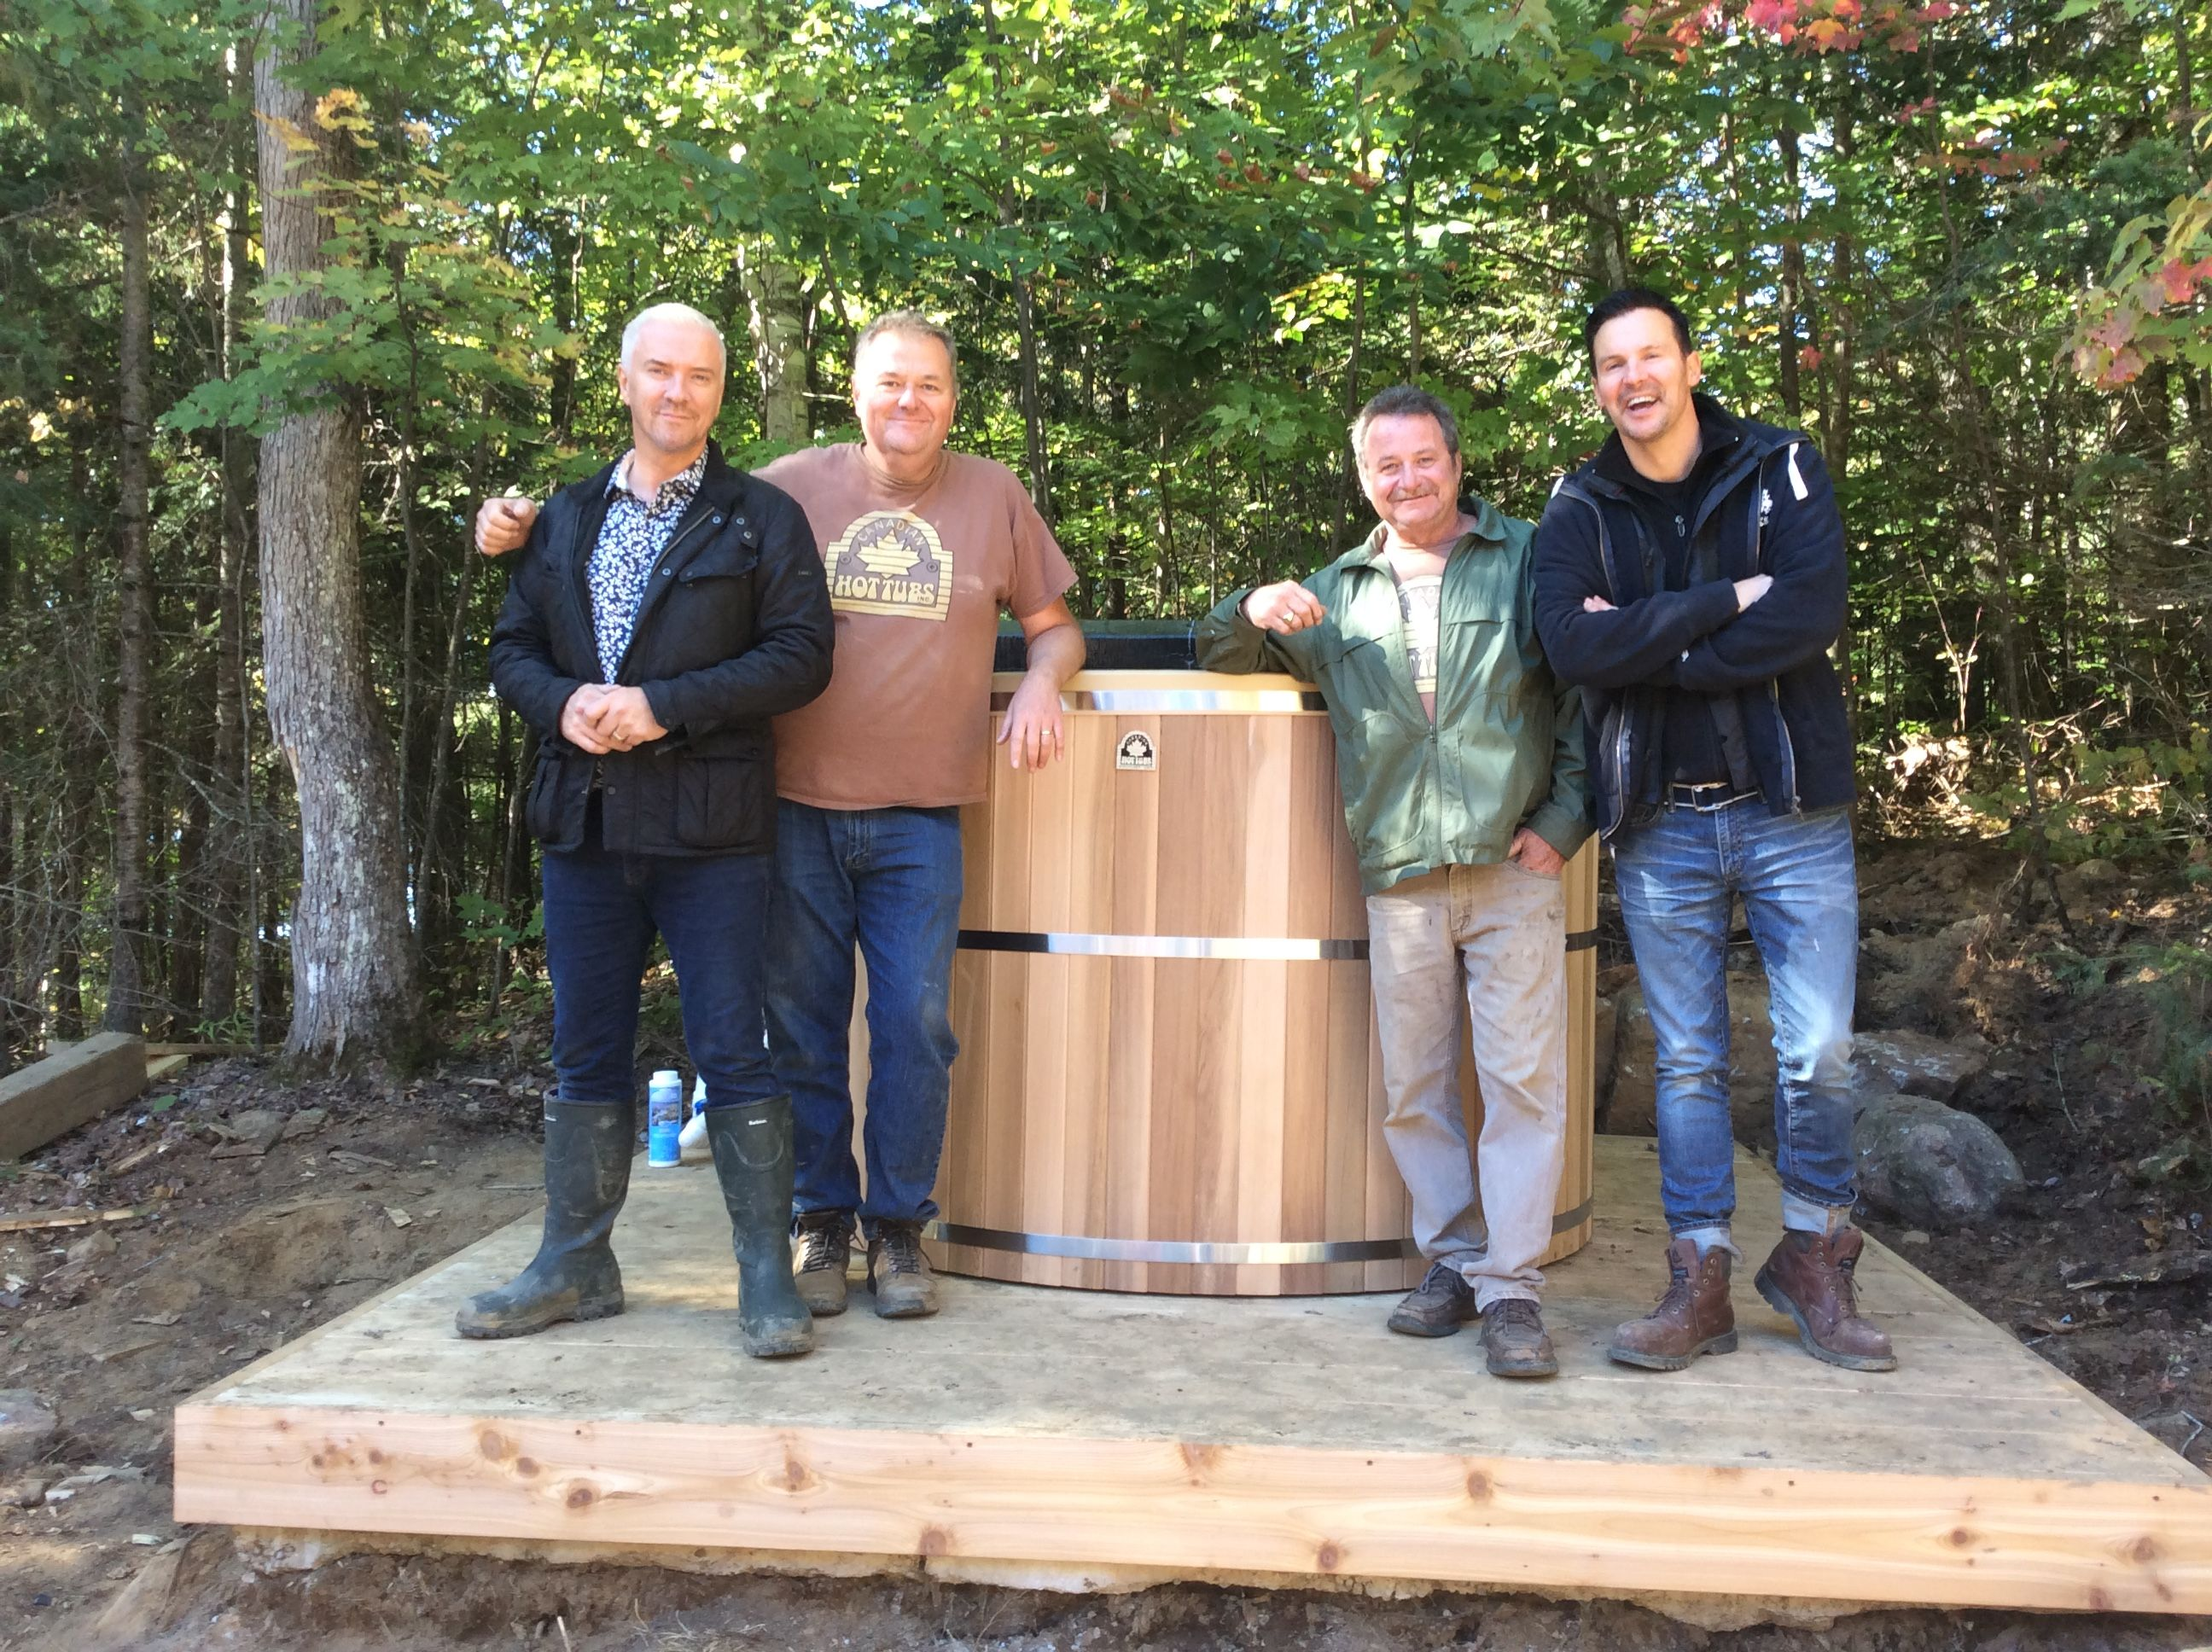 Our work here is complete. The lads have a new cedar hot tub and we are ready to head home.